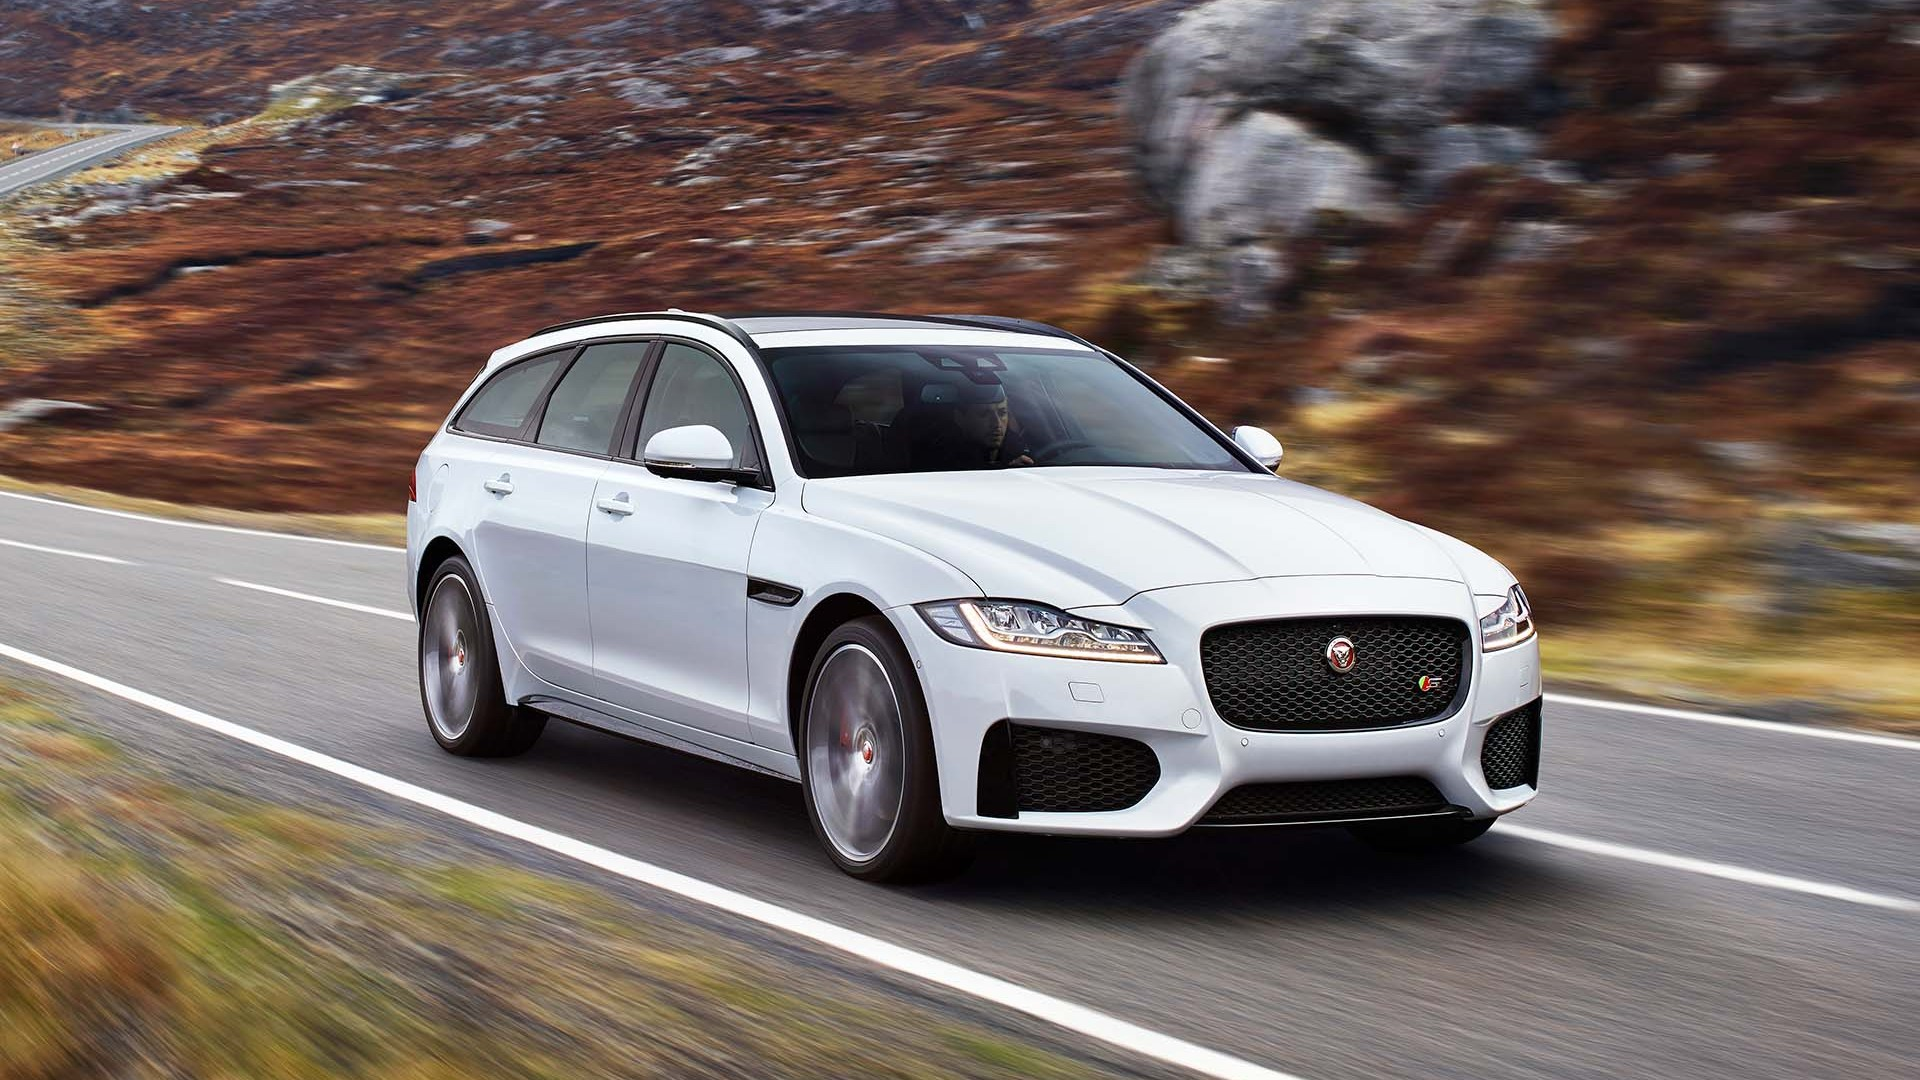 As A Saloon, The XF Has Won Just About Every Award Thatu0027s Available U2013 And  The New Estate Model Might Even Surpass Its Predecessor